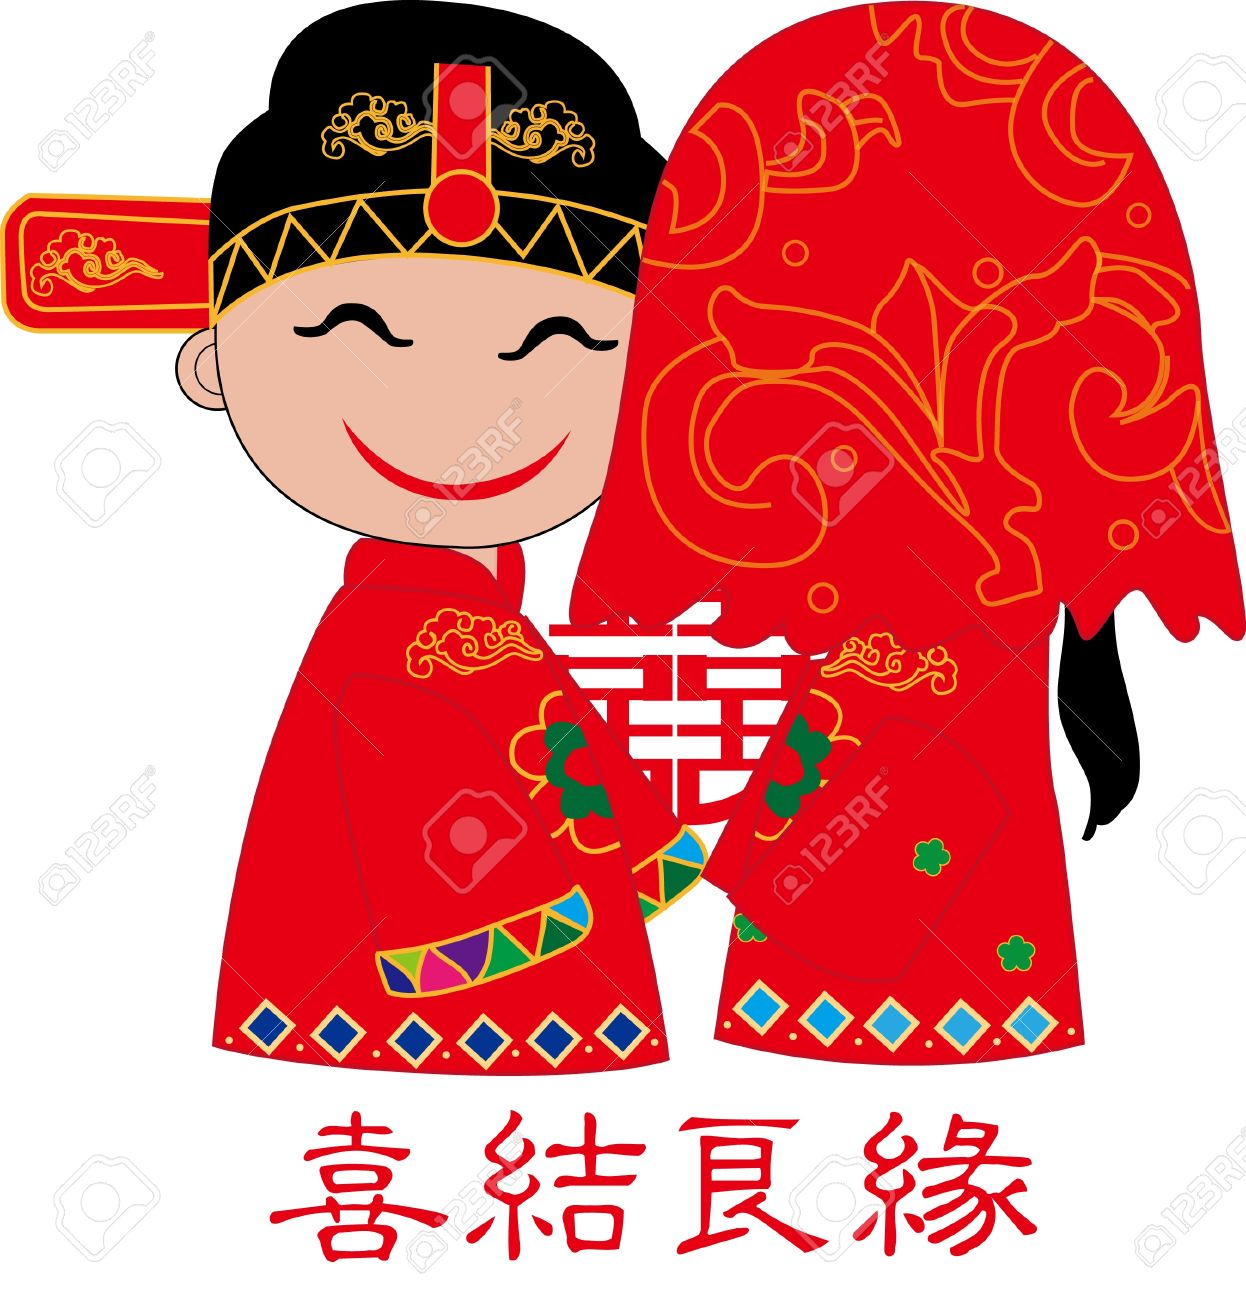 Chinese Couple Clipart.